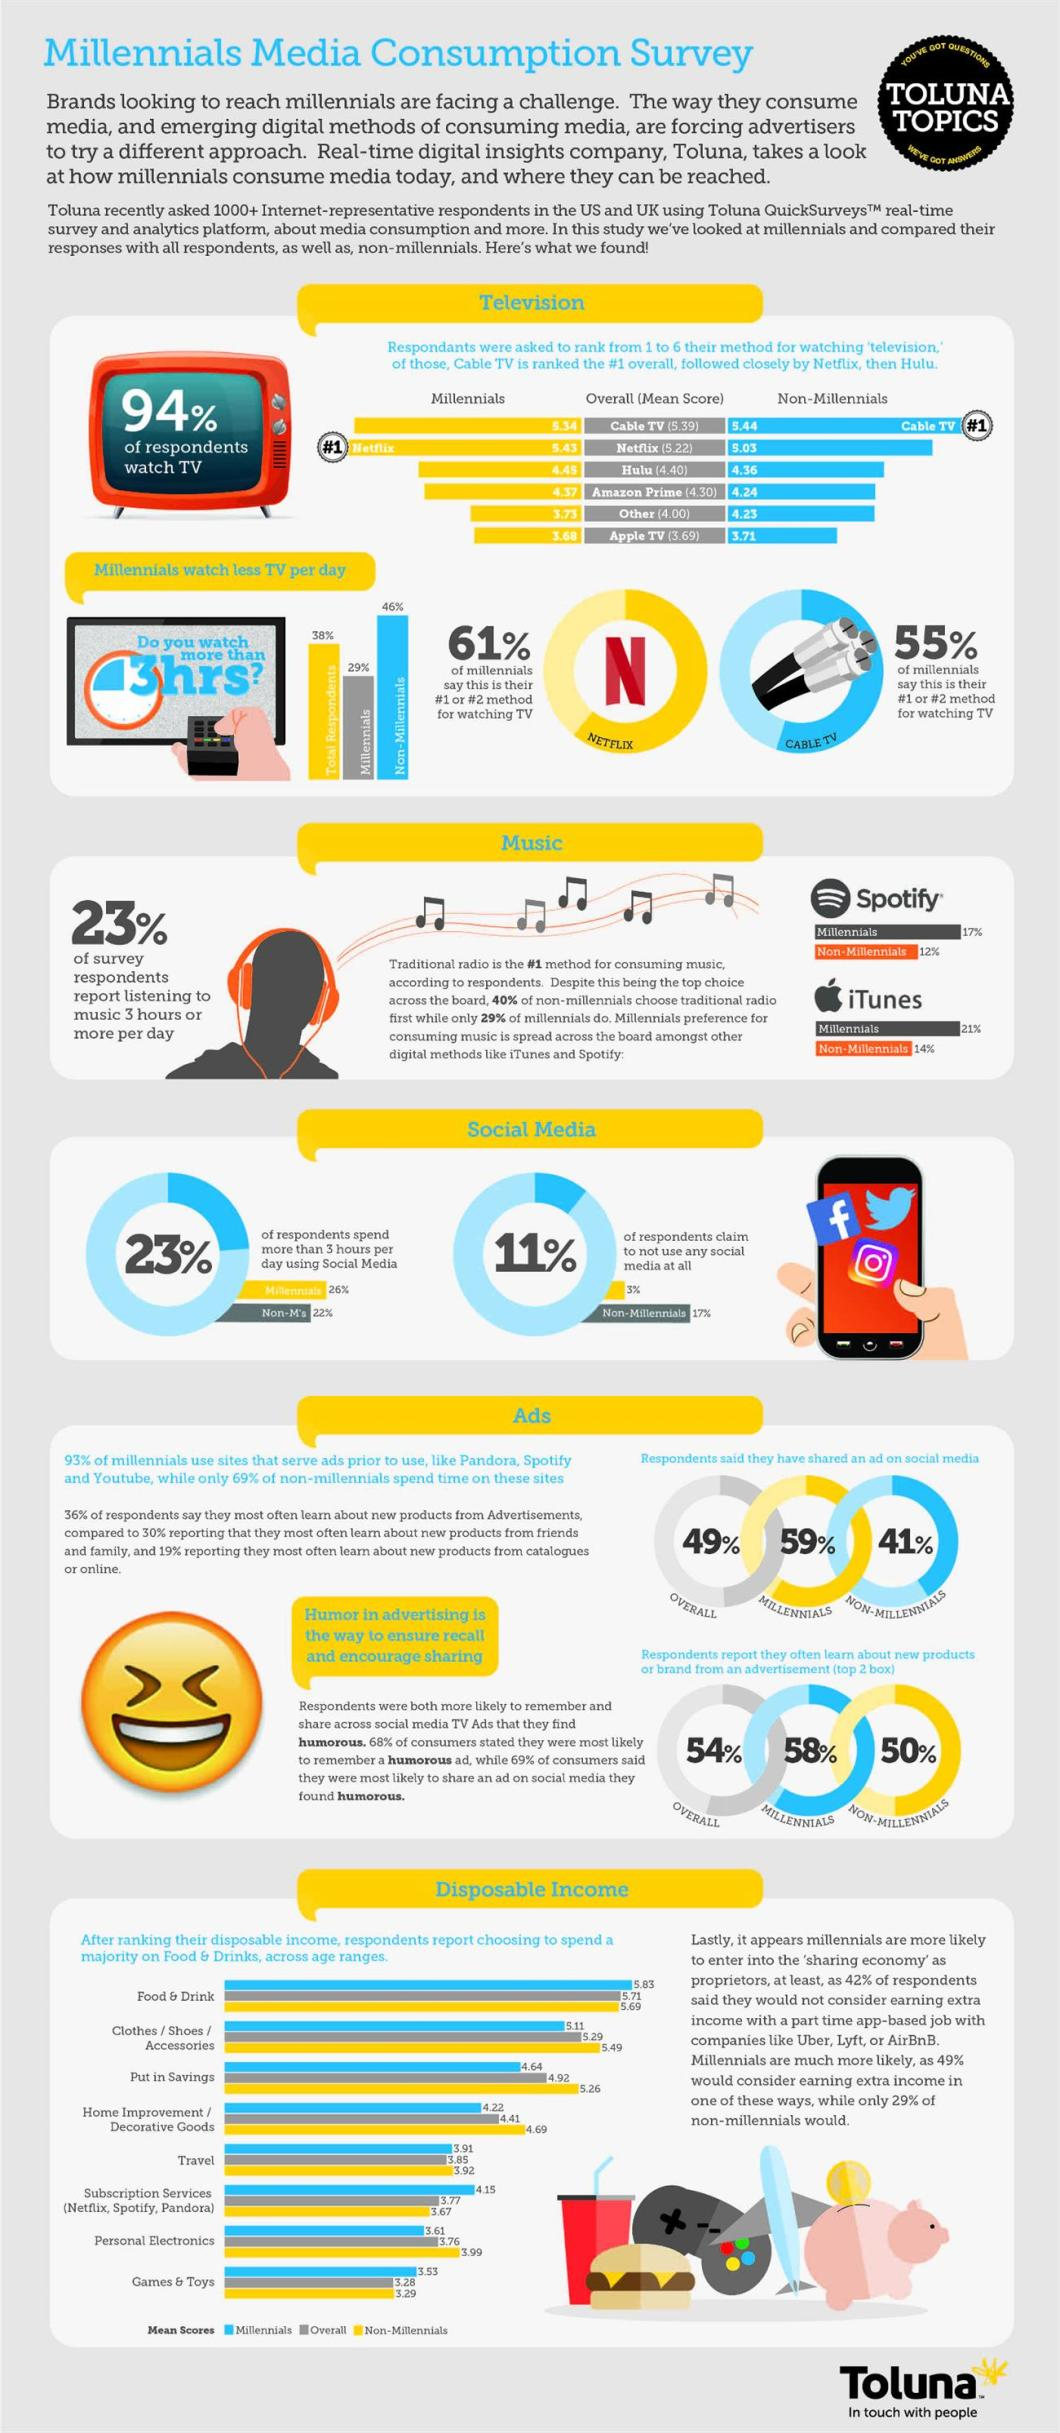 Millennial Media Consumption Patterns - Infographic